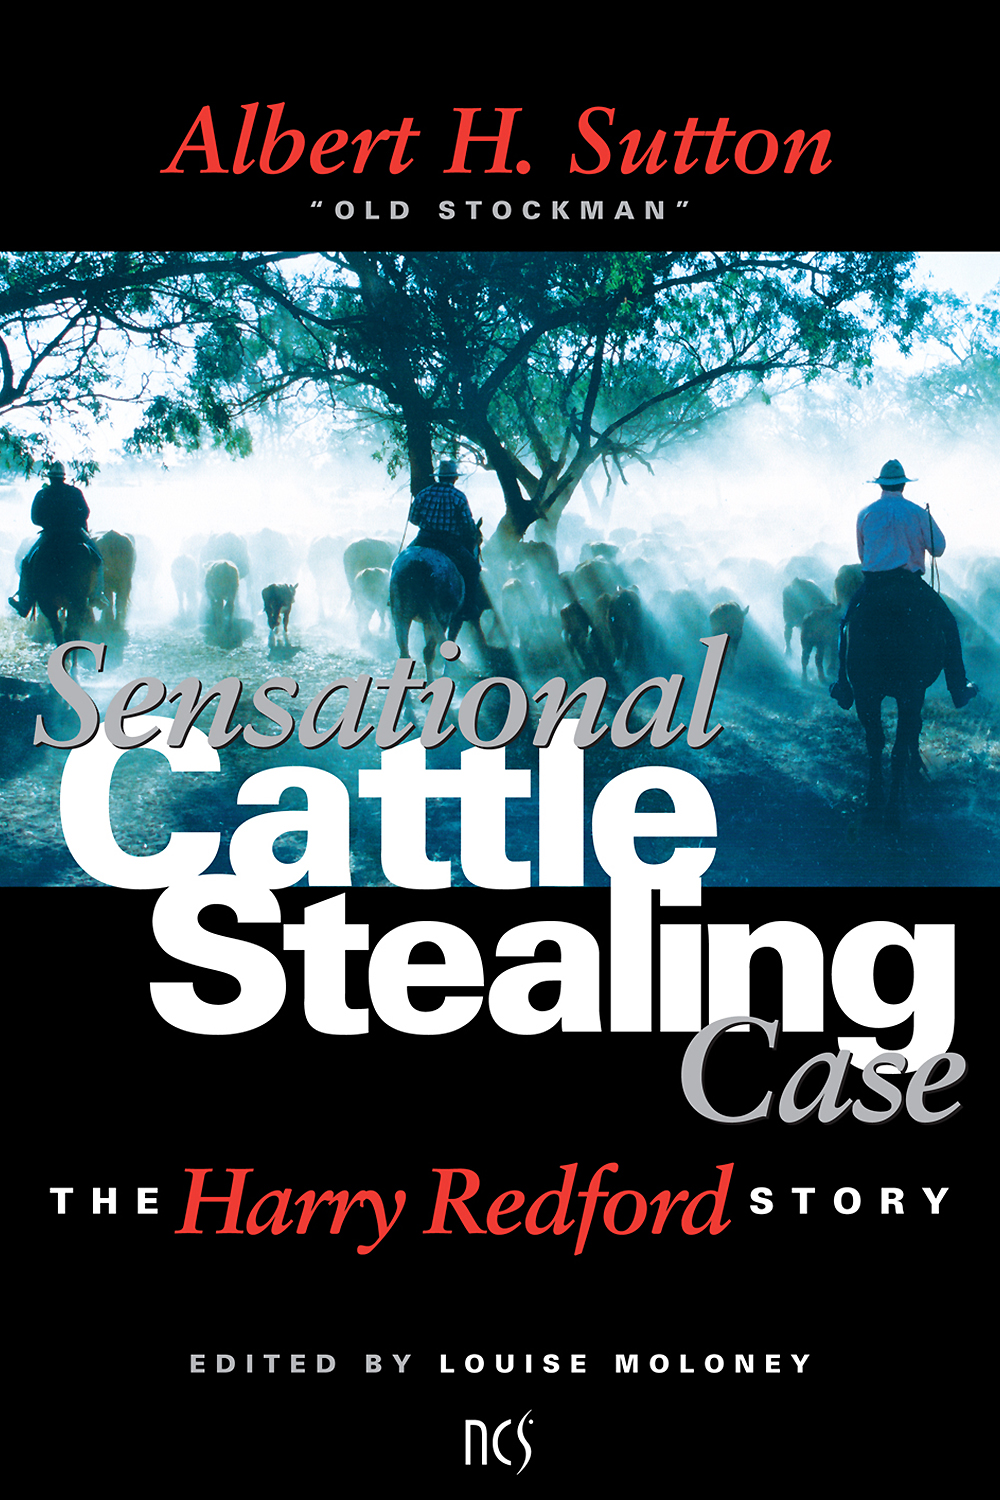 Sensational Cattle Stealing Case edited by Louise Moloney